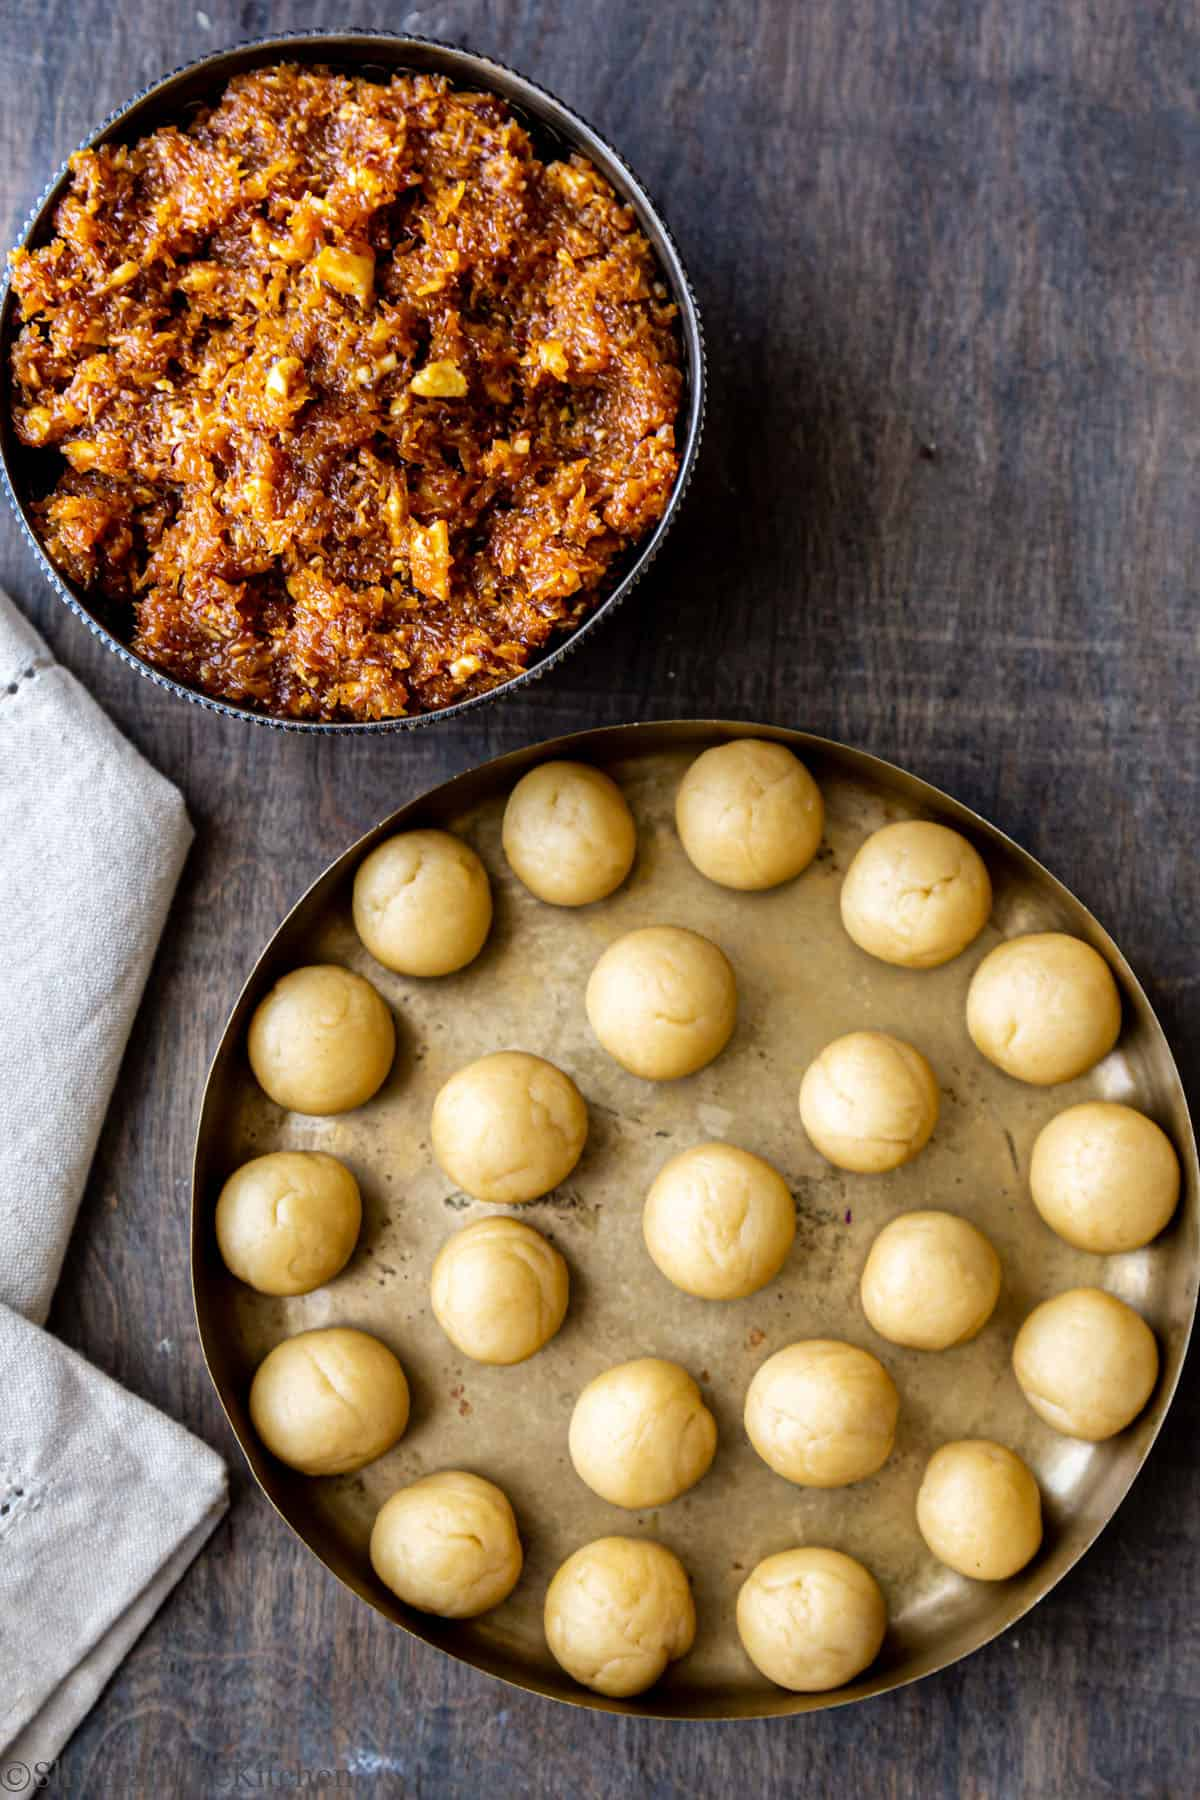 Bowl full of coconut, jaggery filling  and plate with round shaped dough balls.